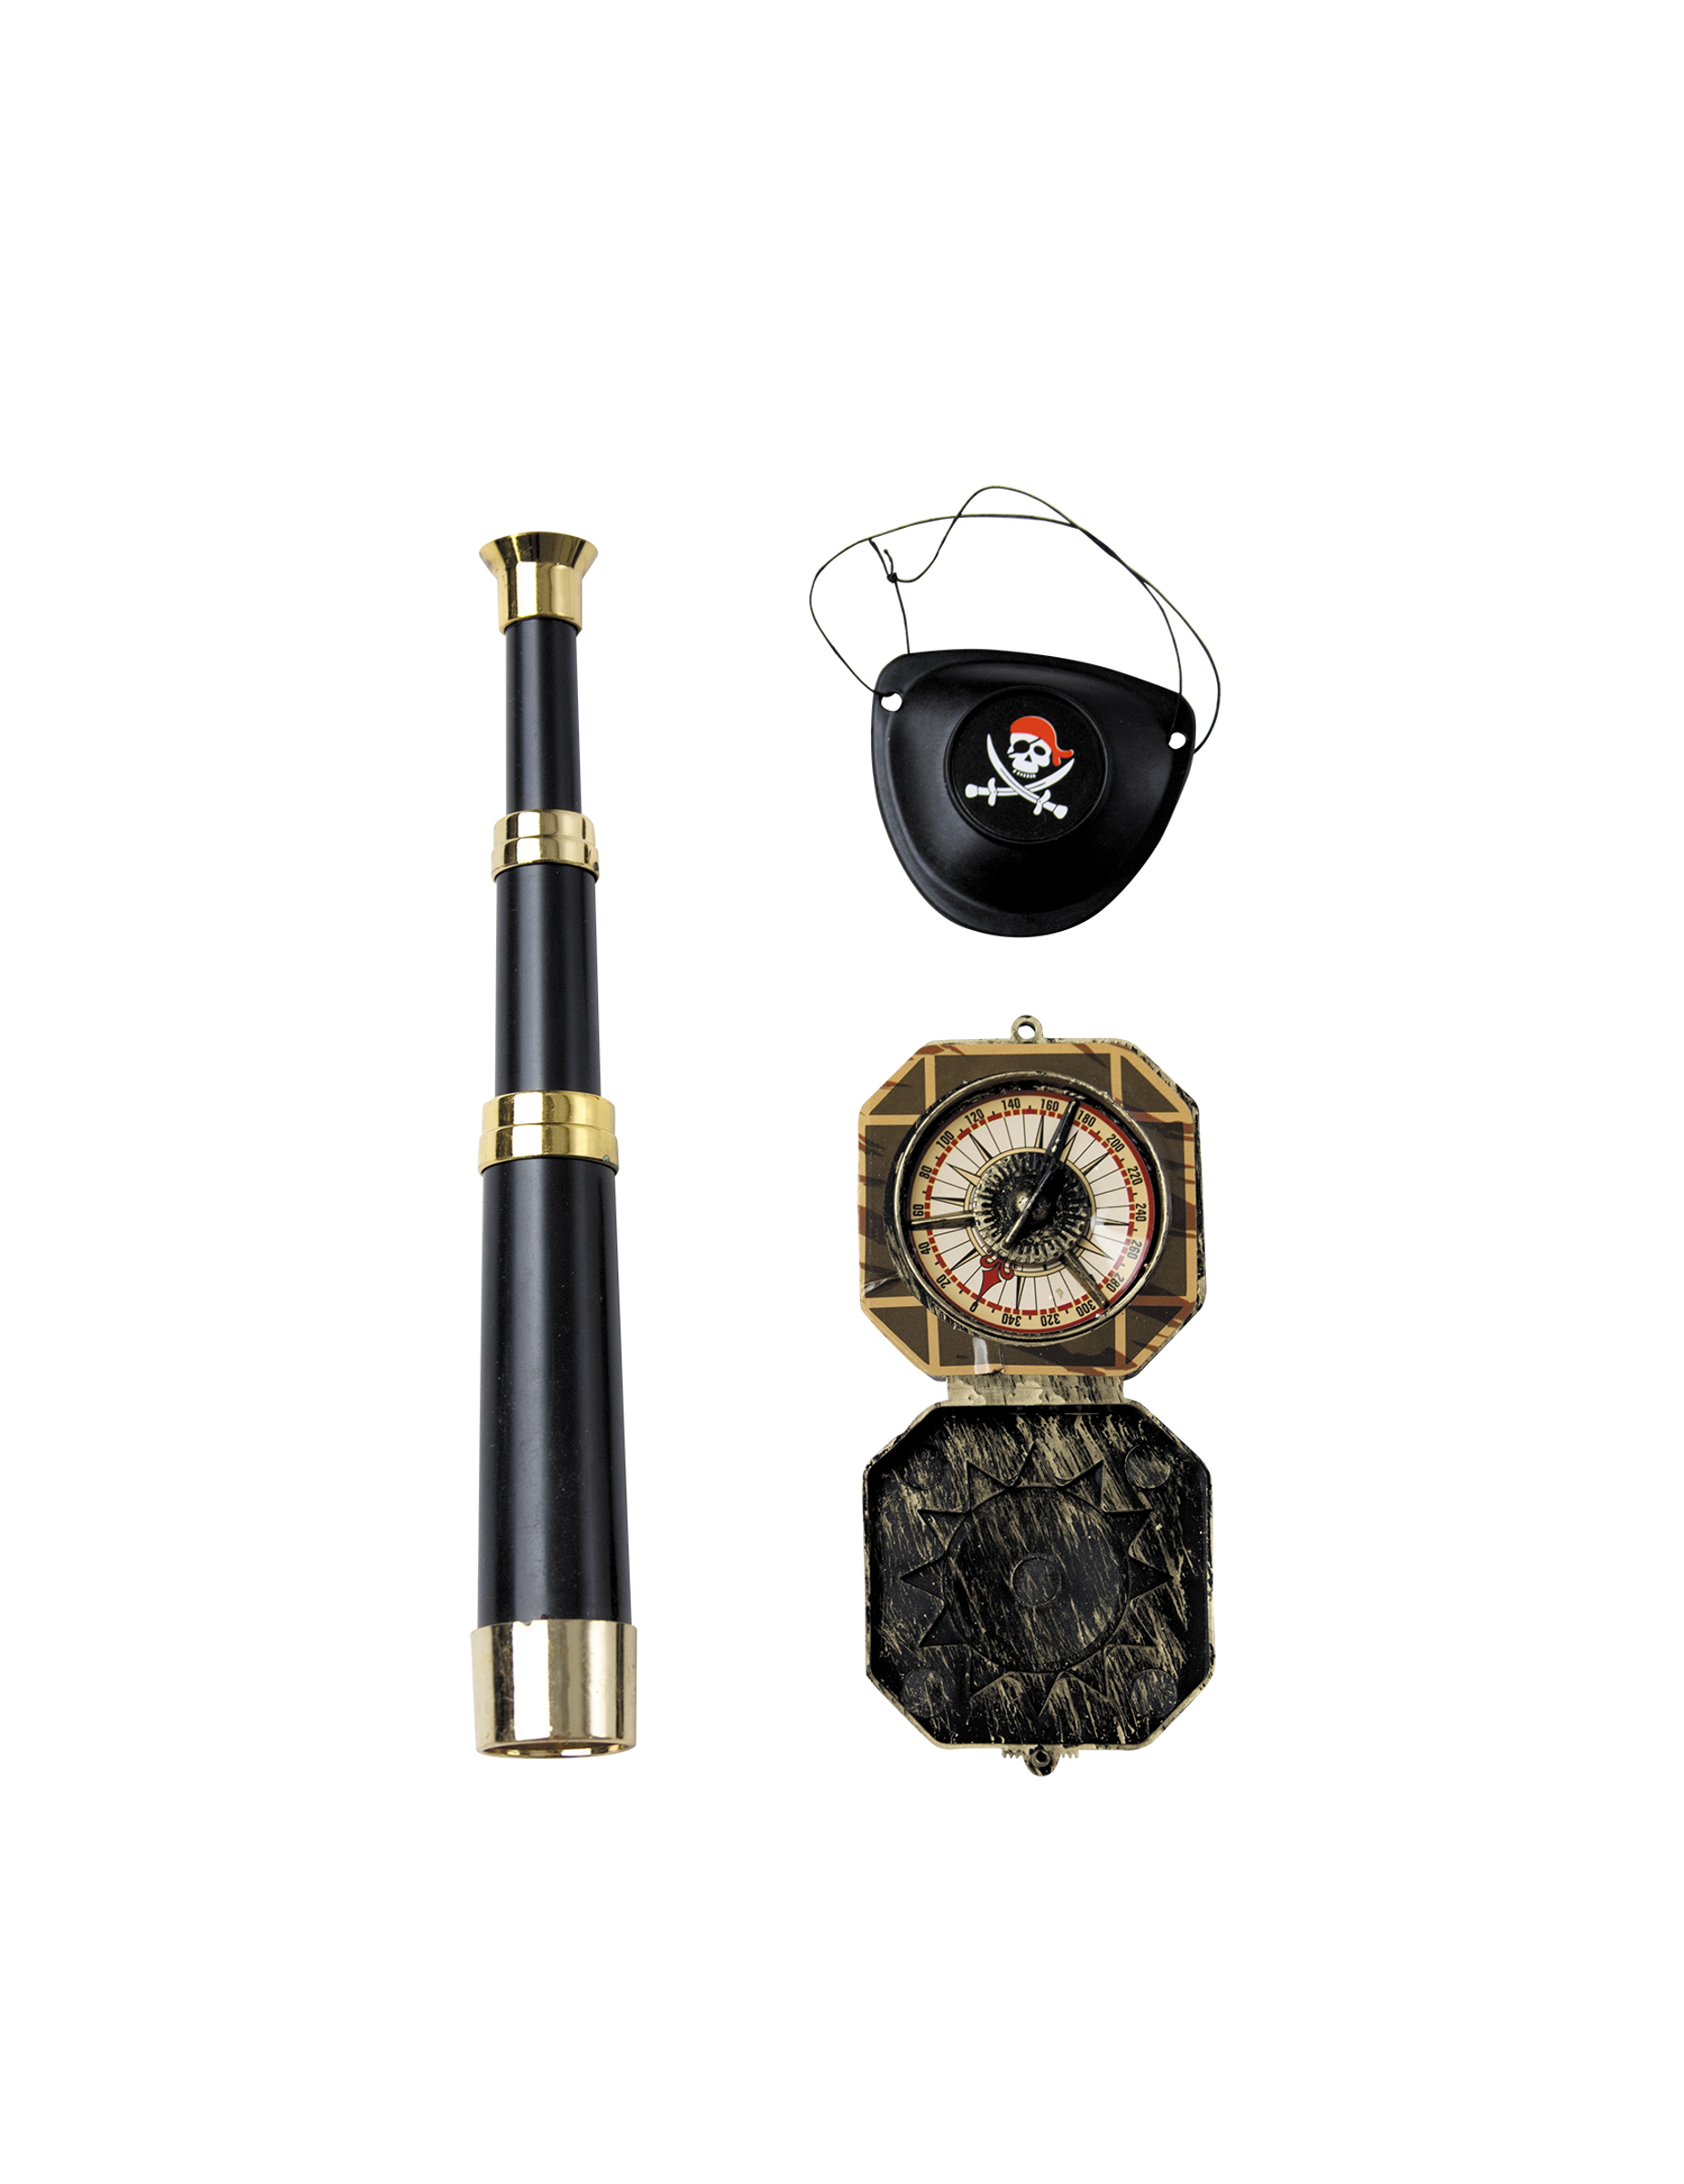 94a352a3a69 Kit accessoires capitaine pirate adulte   Deguise-toi